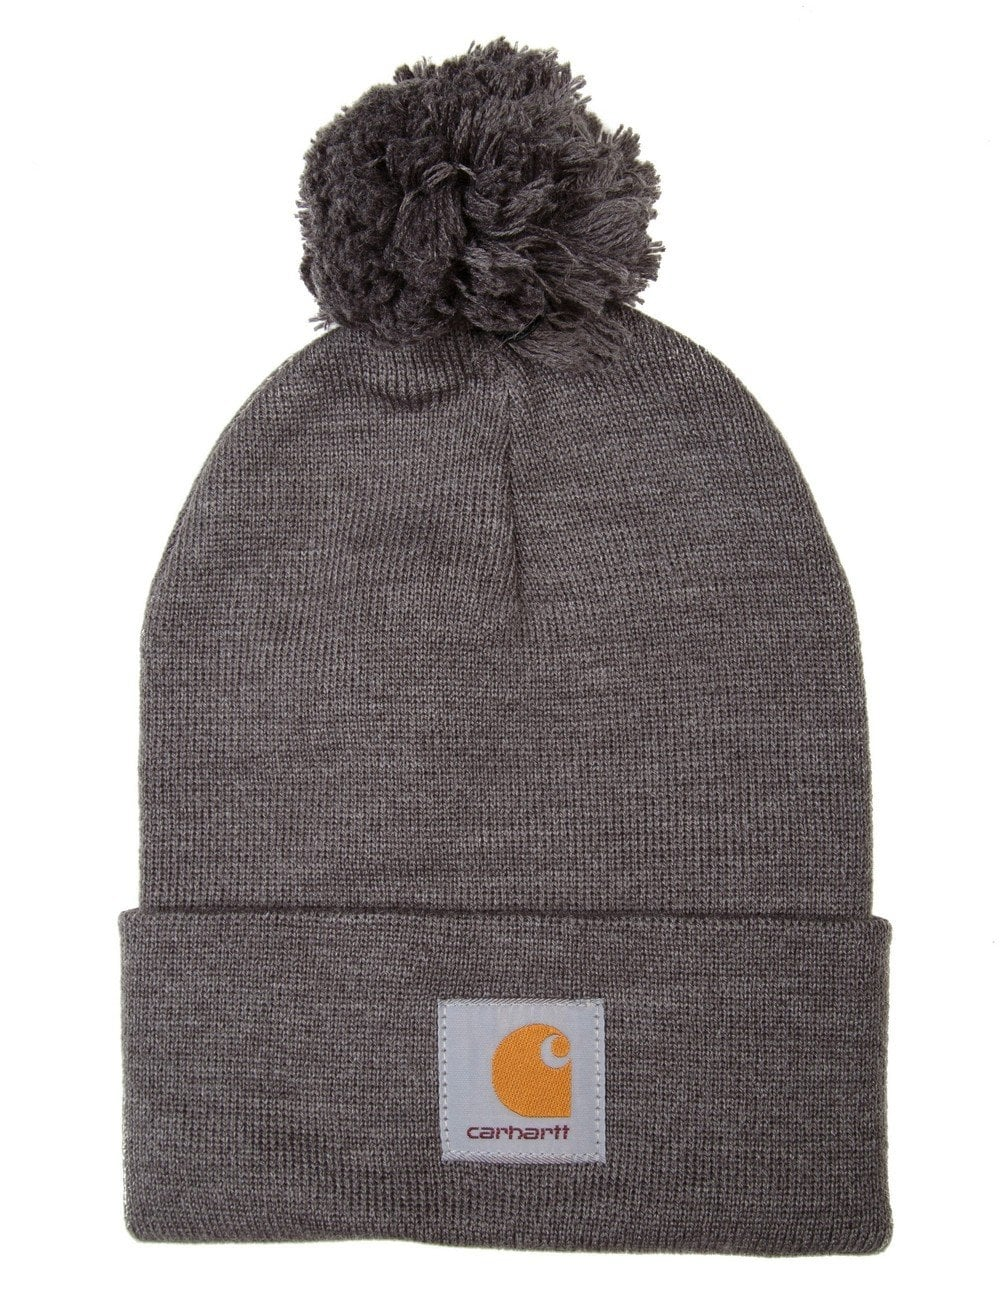 Carhartt WIP Bobble Watch Hat - Dark Grey Heather - Accessories from ... a42e336285a6